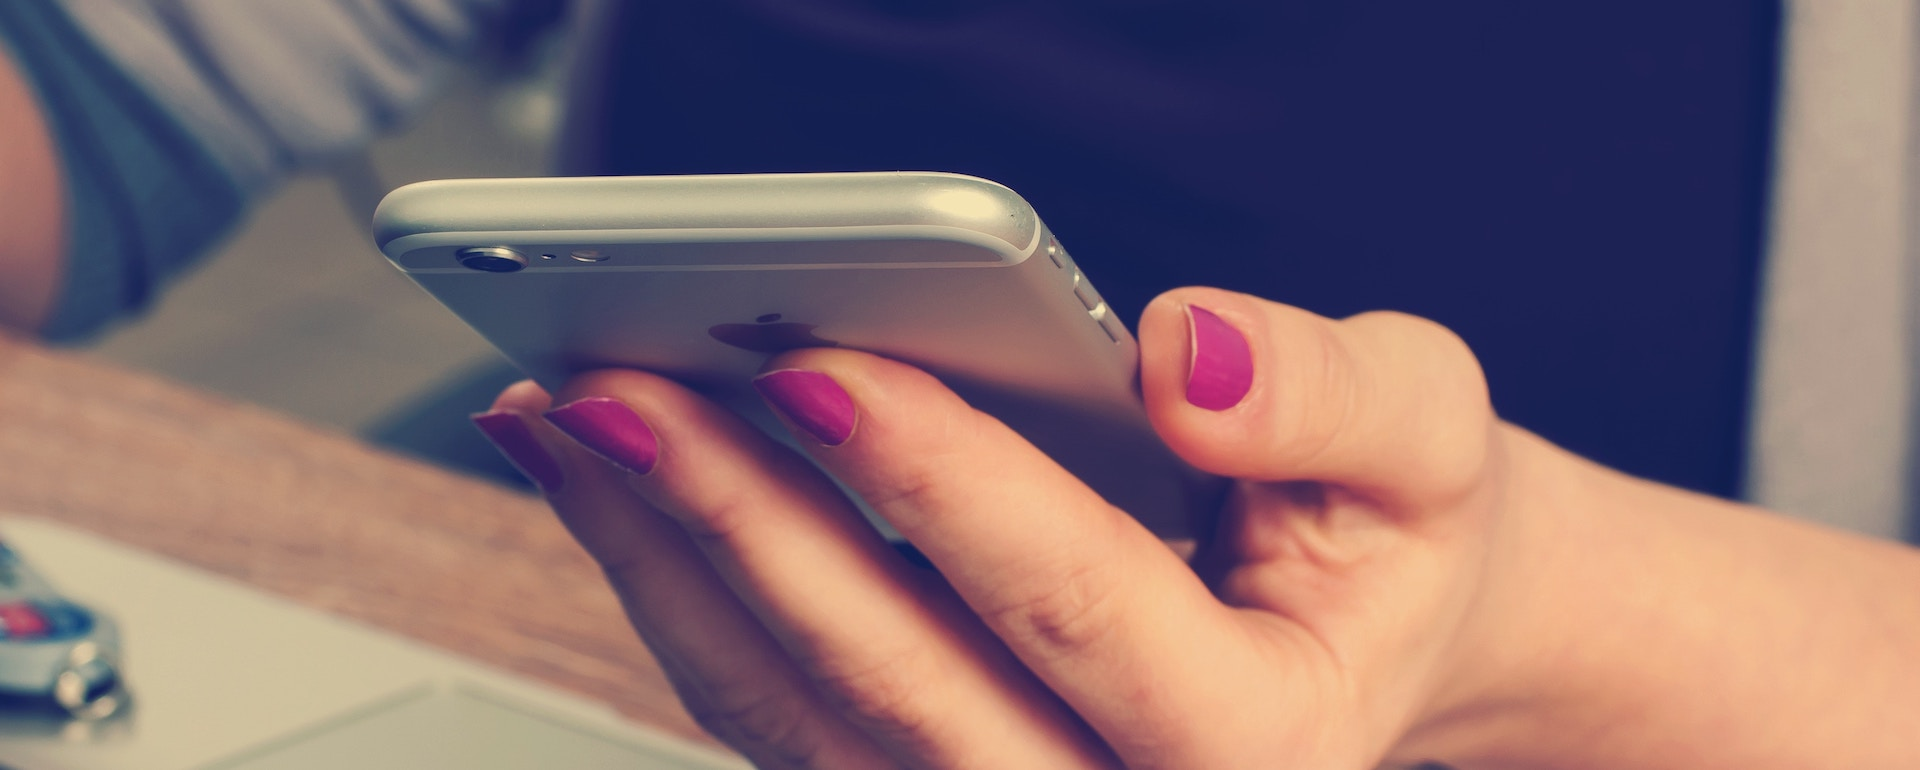 Mobile Marketing Strategies for Smartphone Web Surfing Generation